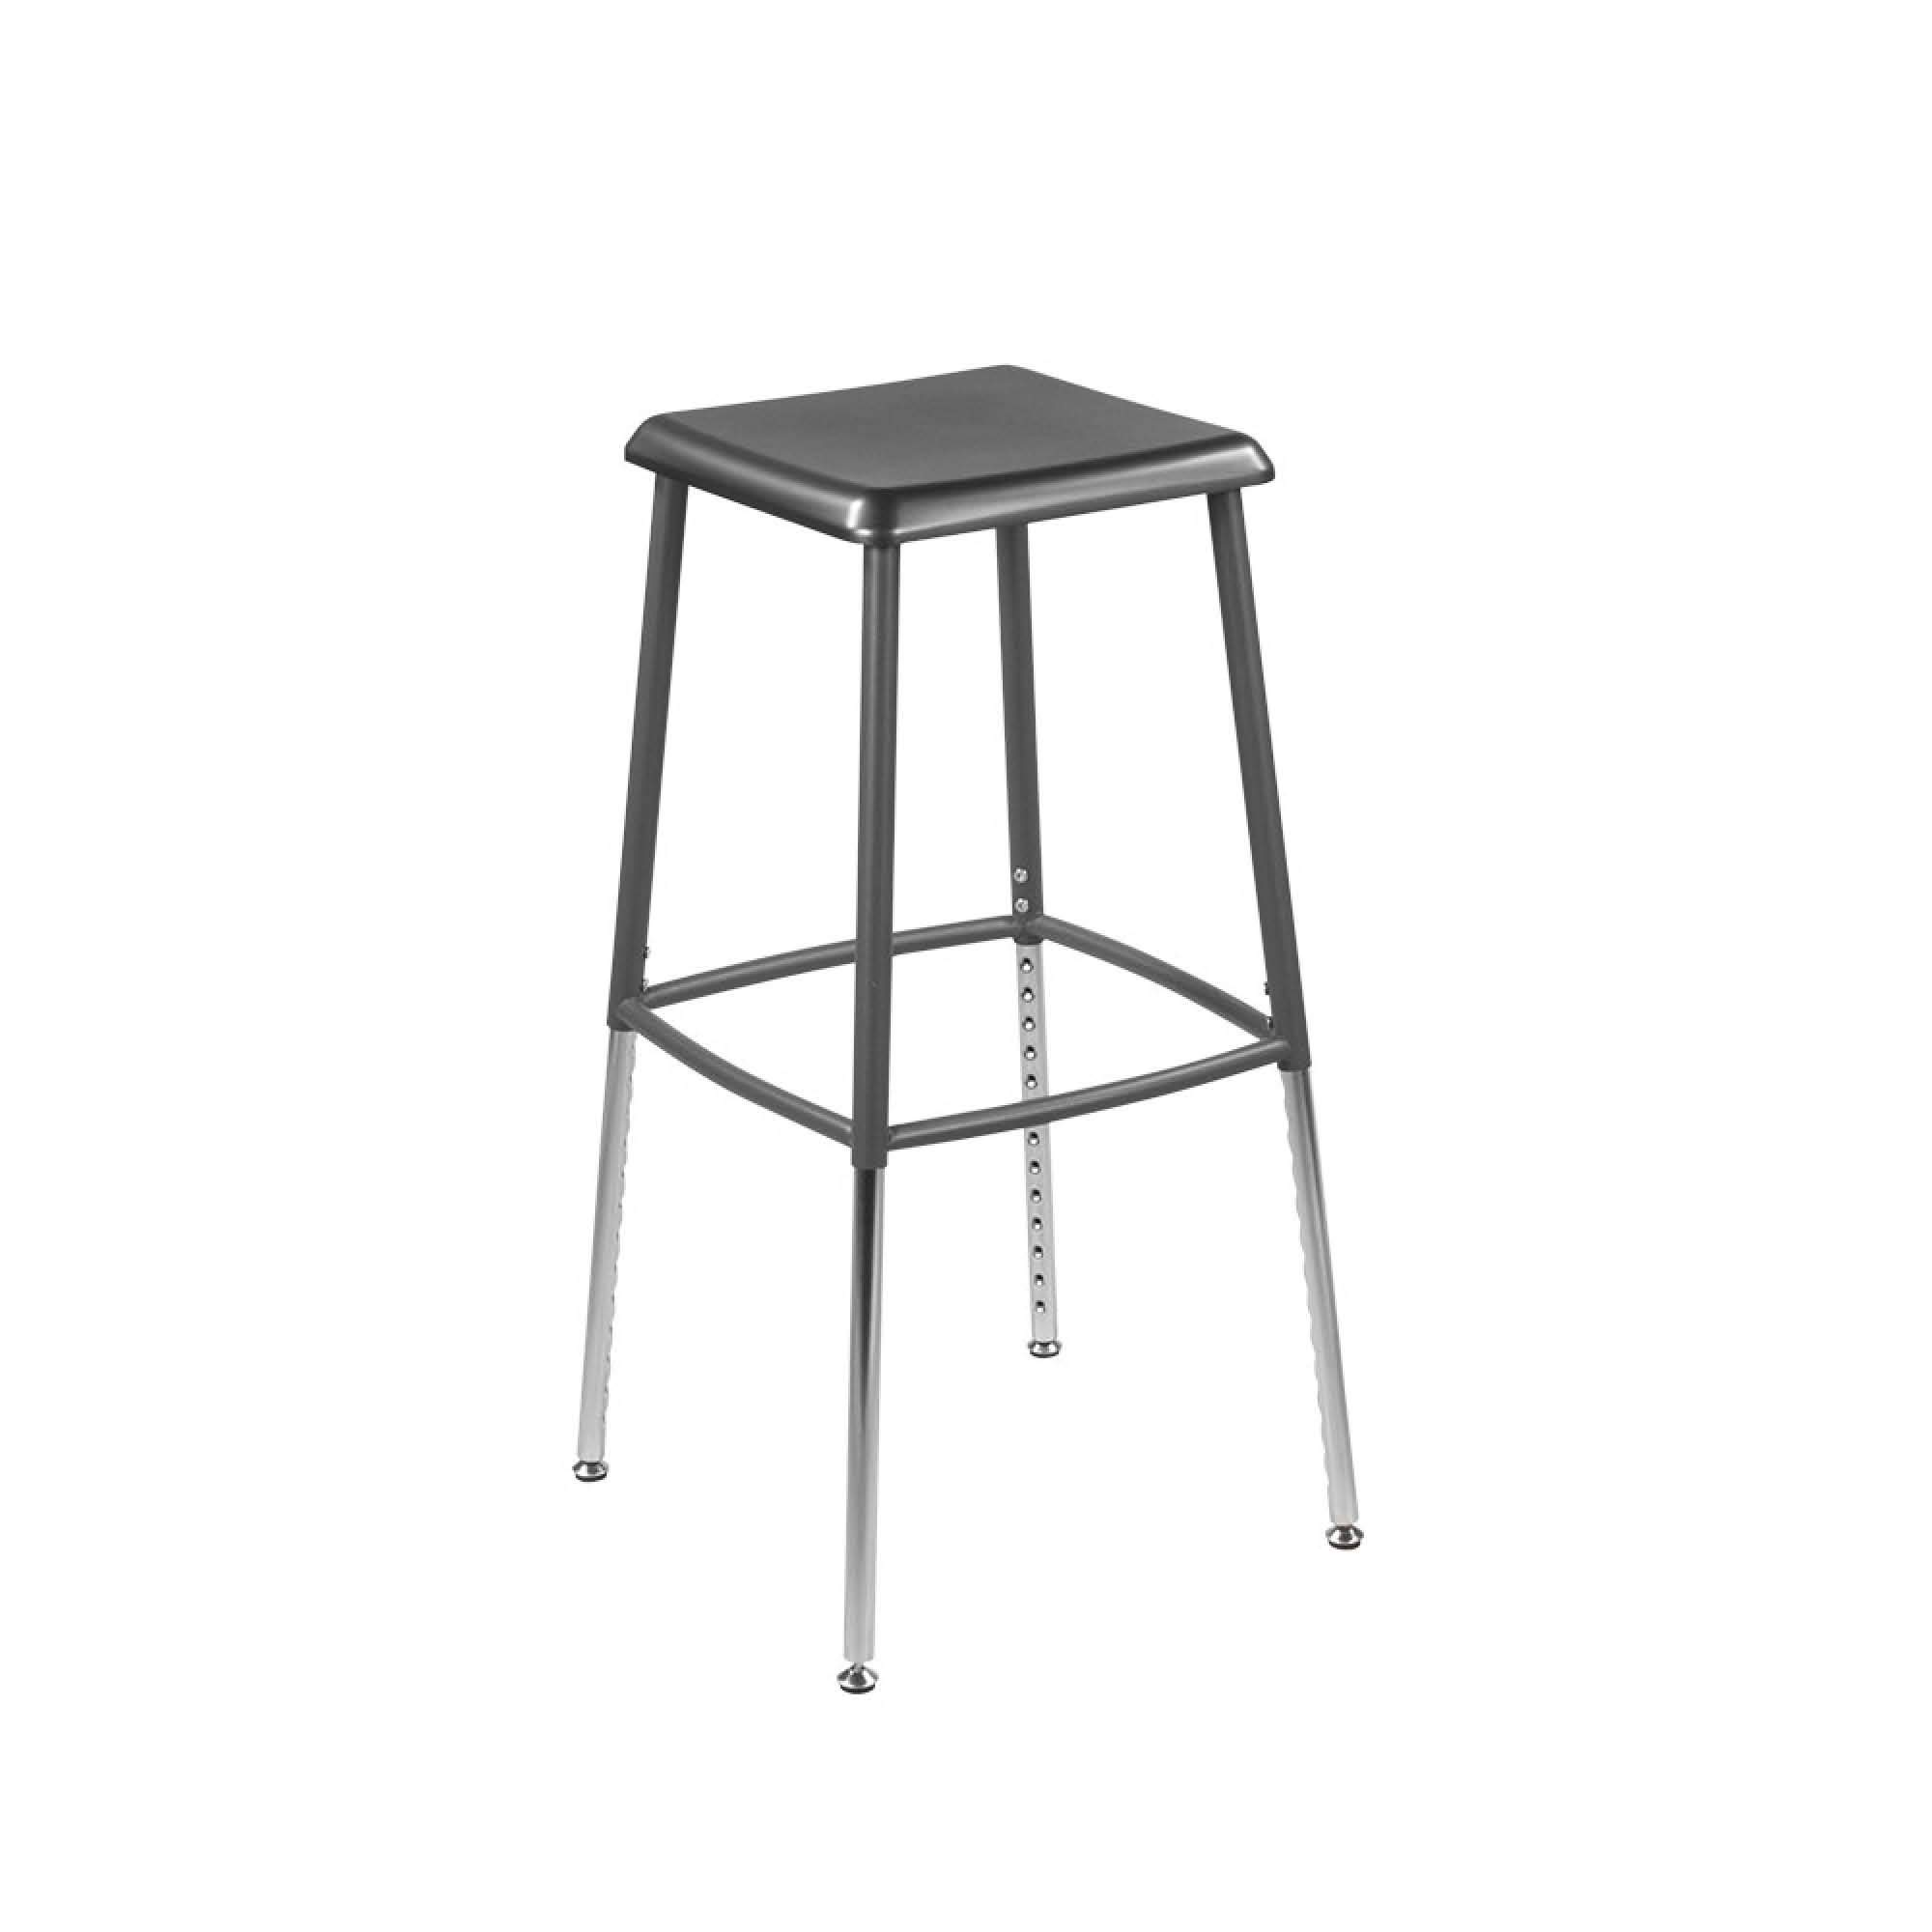 VARIDESK Education - Stand2Learn Stool - Stackable Flexible Active Classroom Seating by VARIDESK